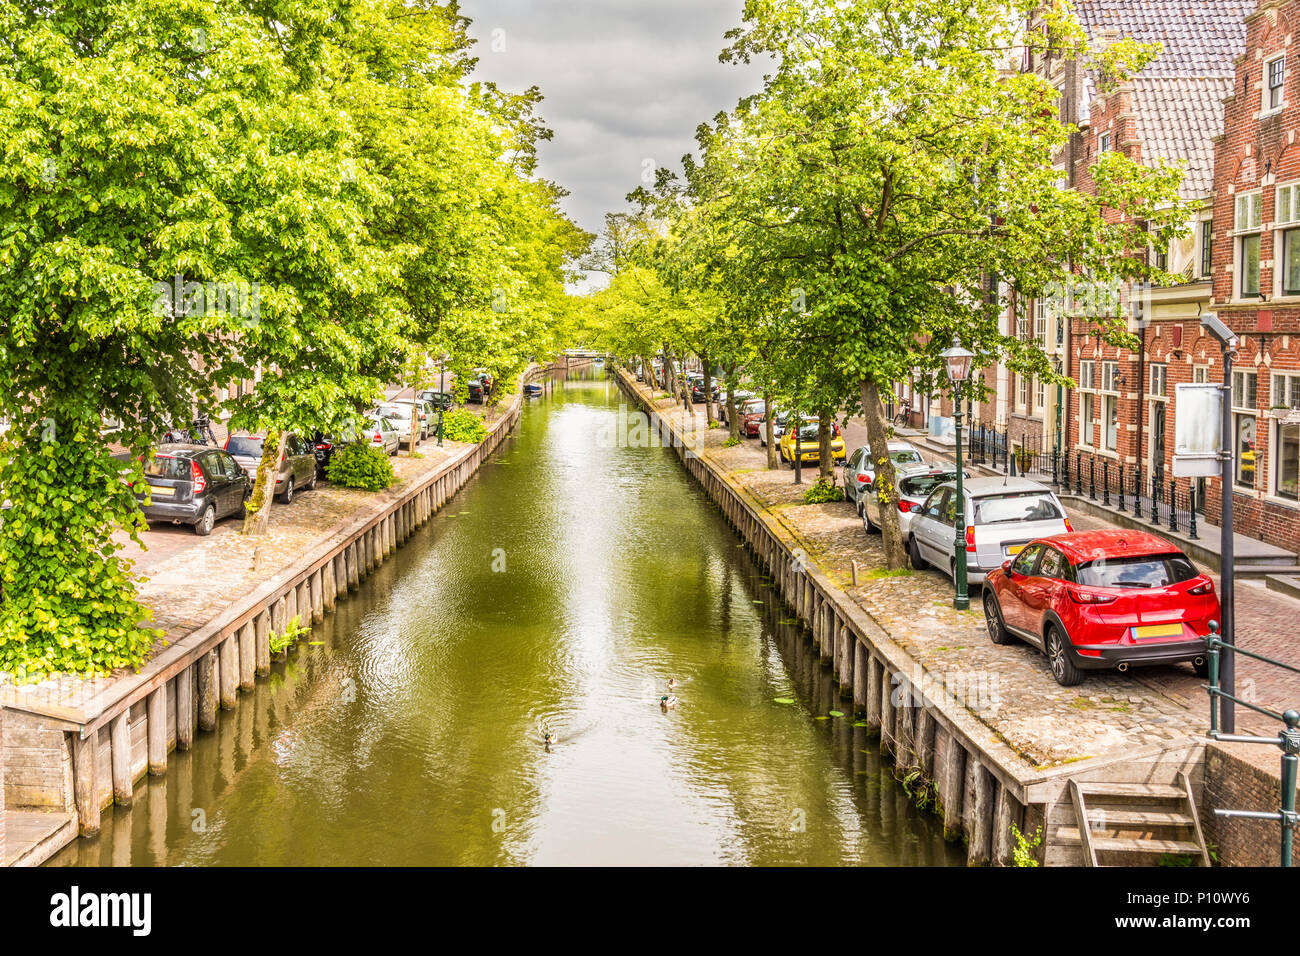 Canal street with its traditional houses and bridges in a neighborhood of la vila de edam. netherlands - Stock Image